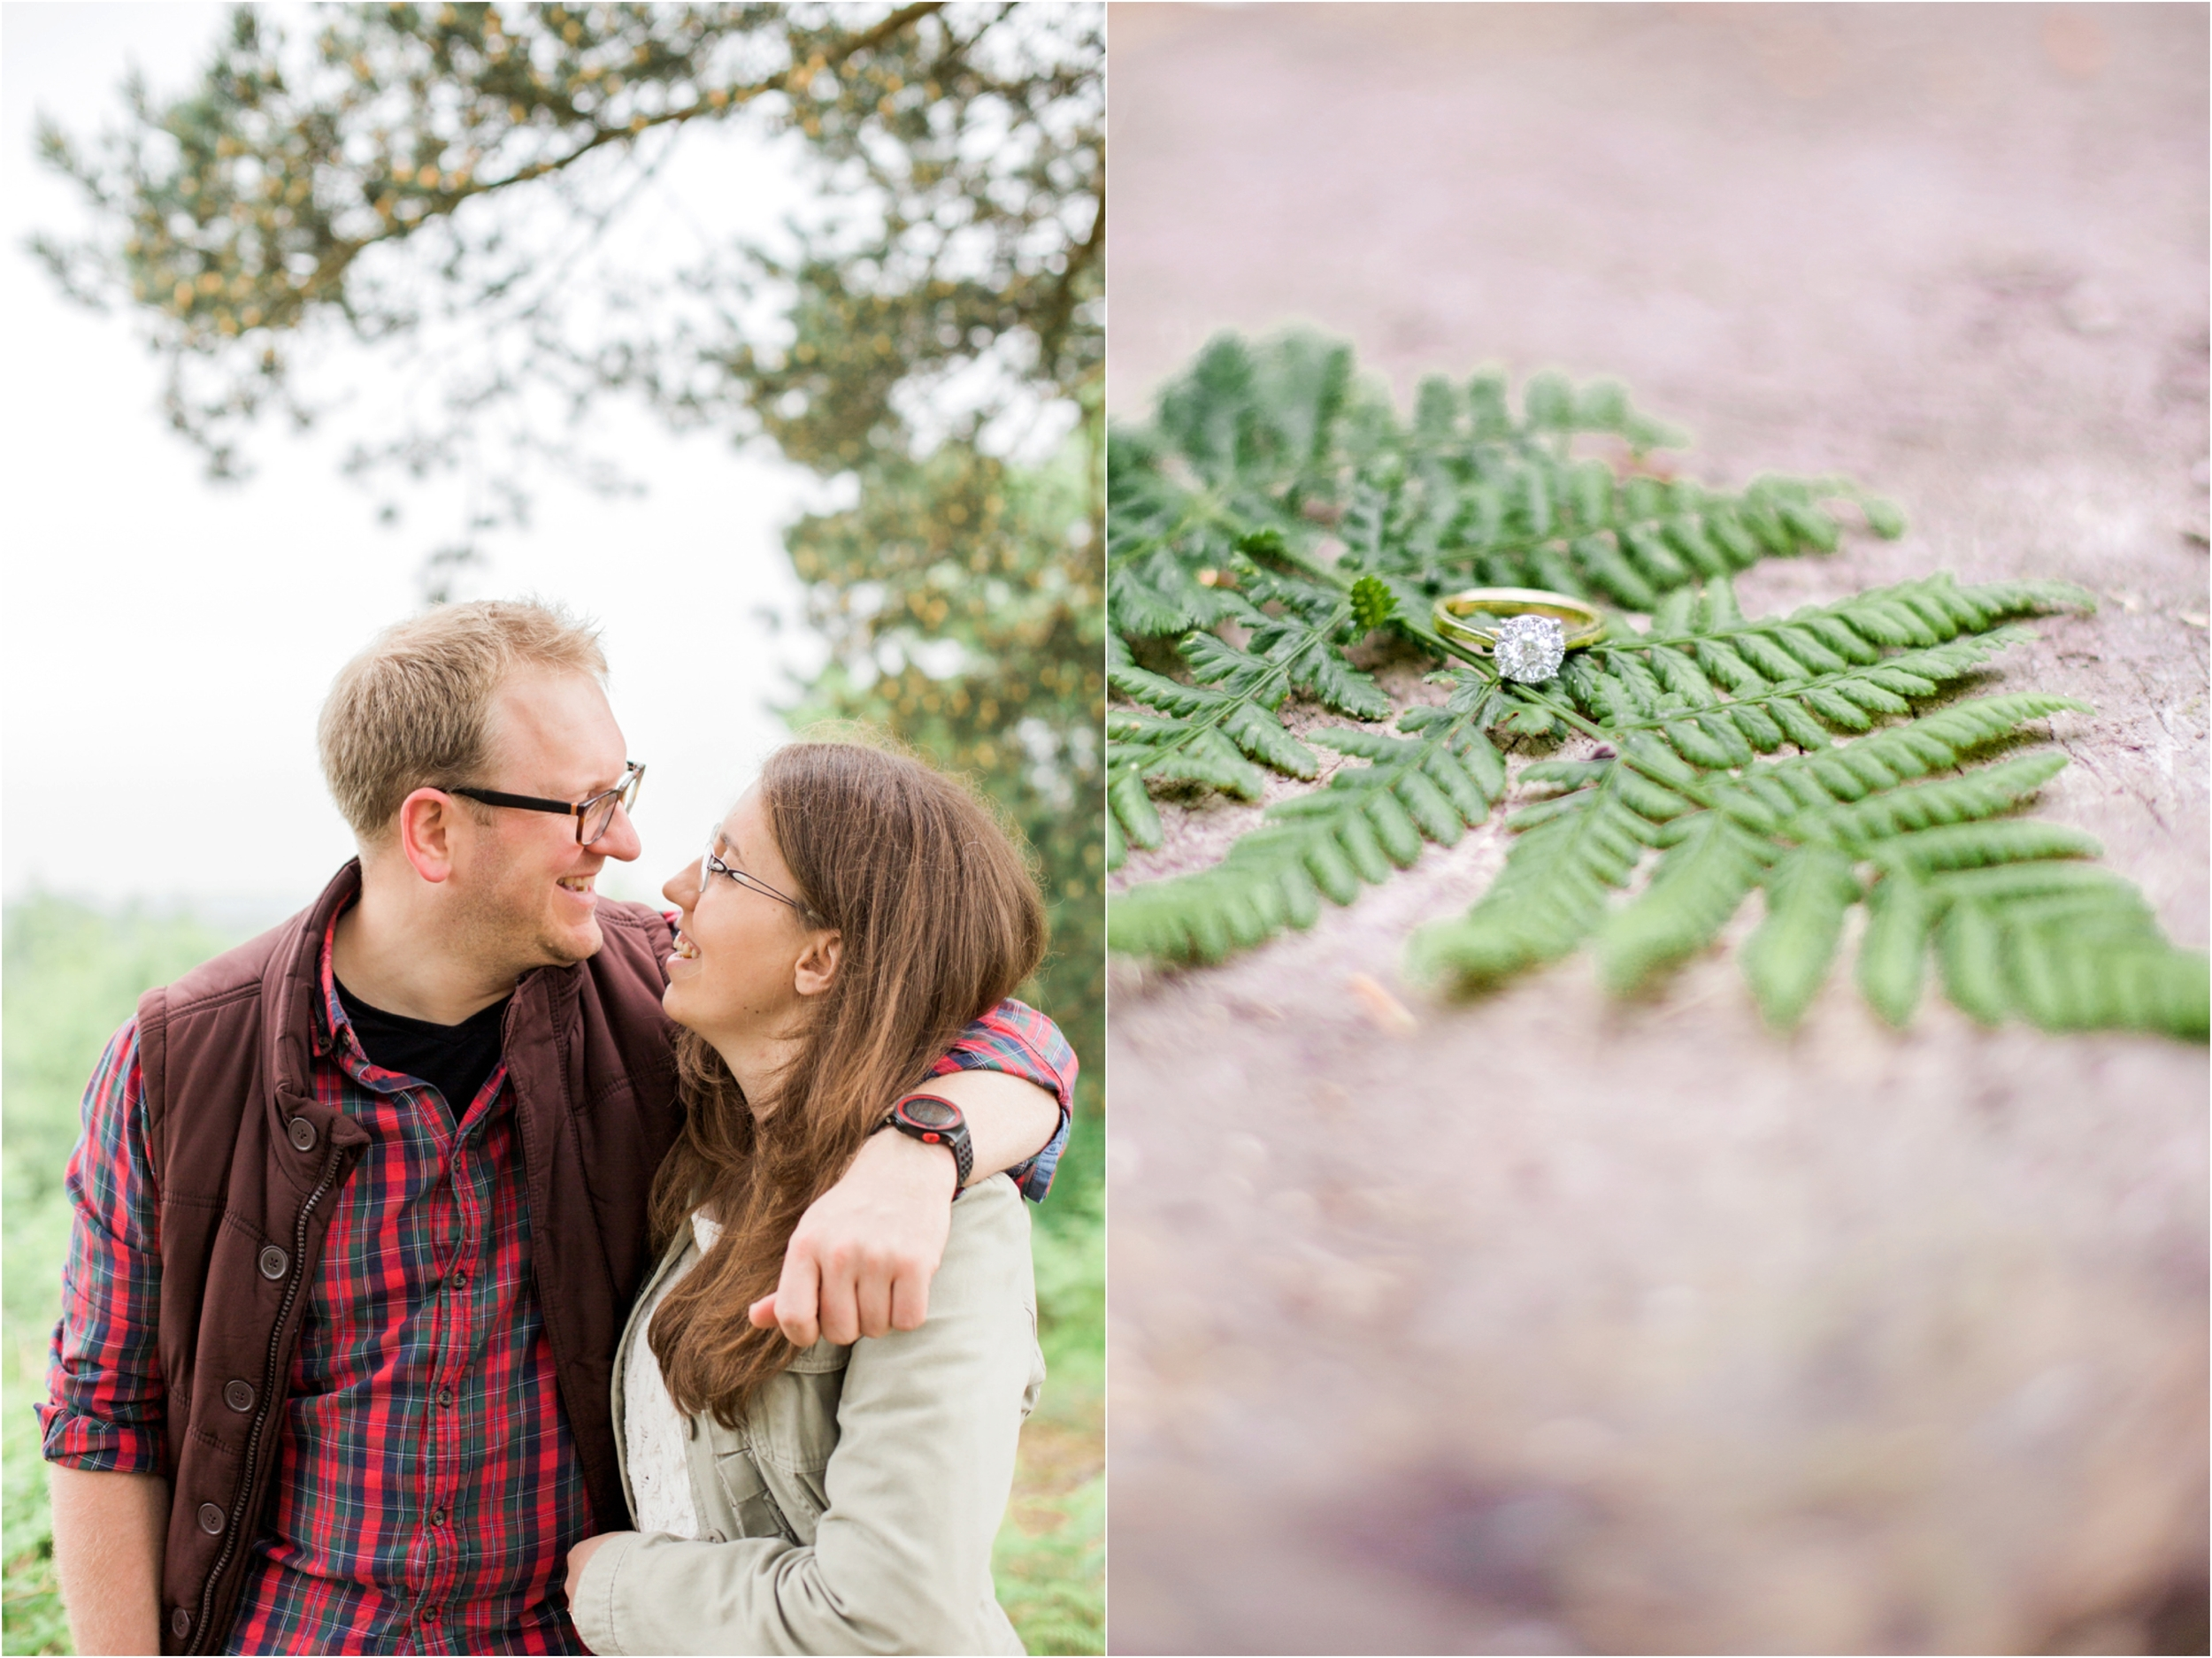 006Charlotte & Kelvin - Lickey Hills Engagement - Sophie Evans Photography - Warwickshire Wedding Photographer.jpg